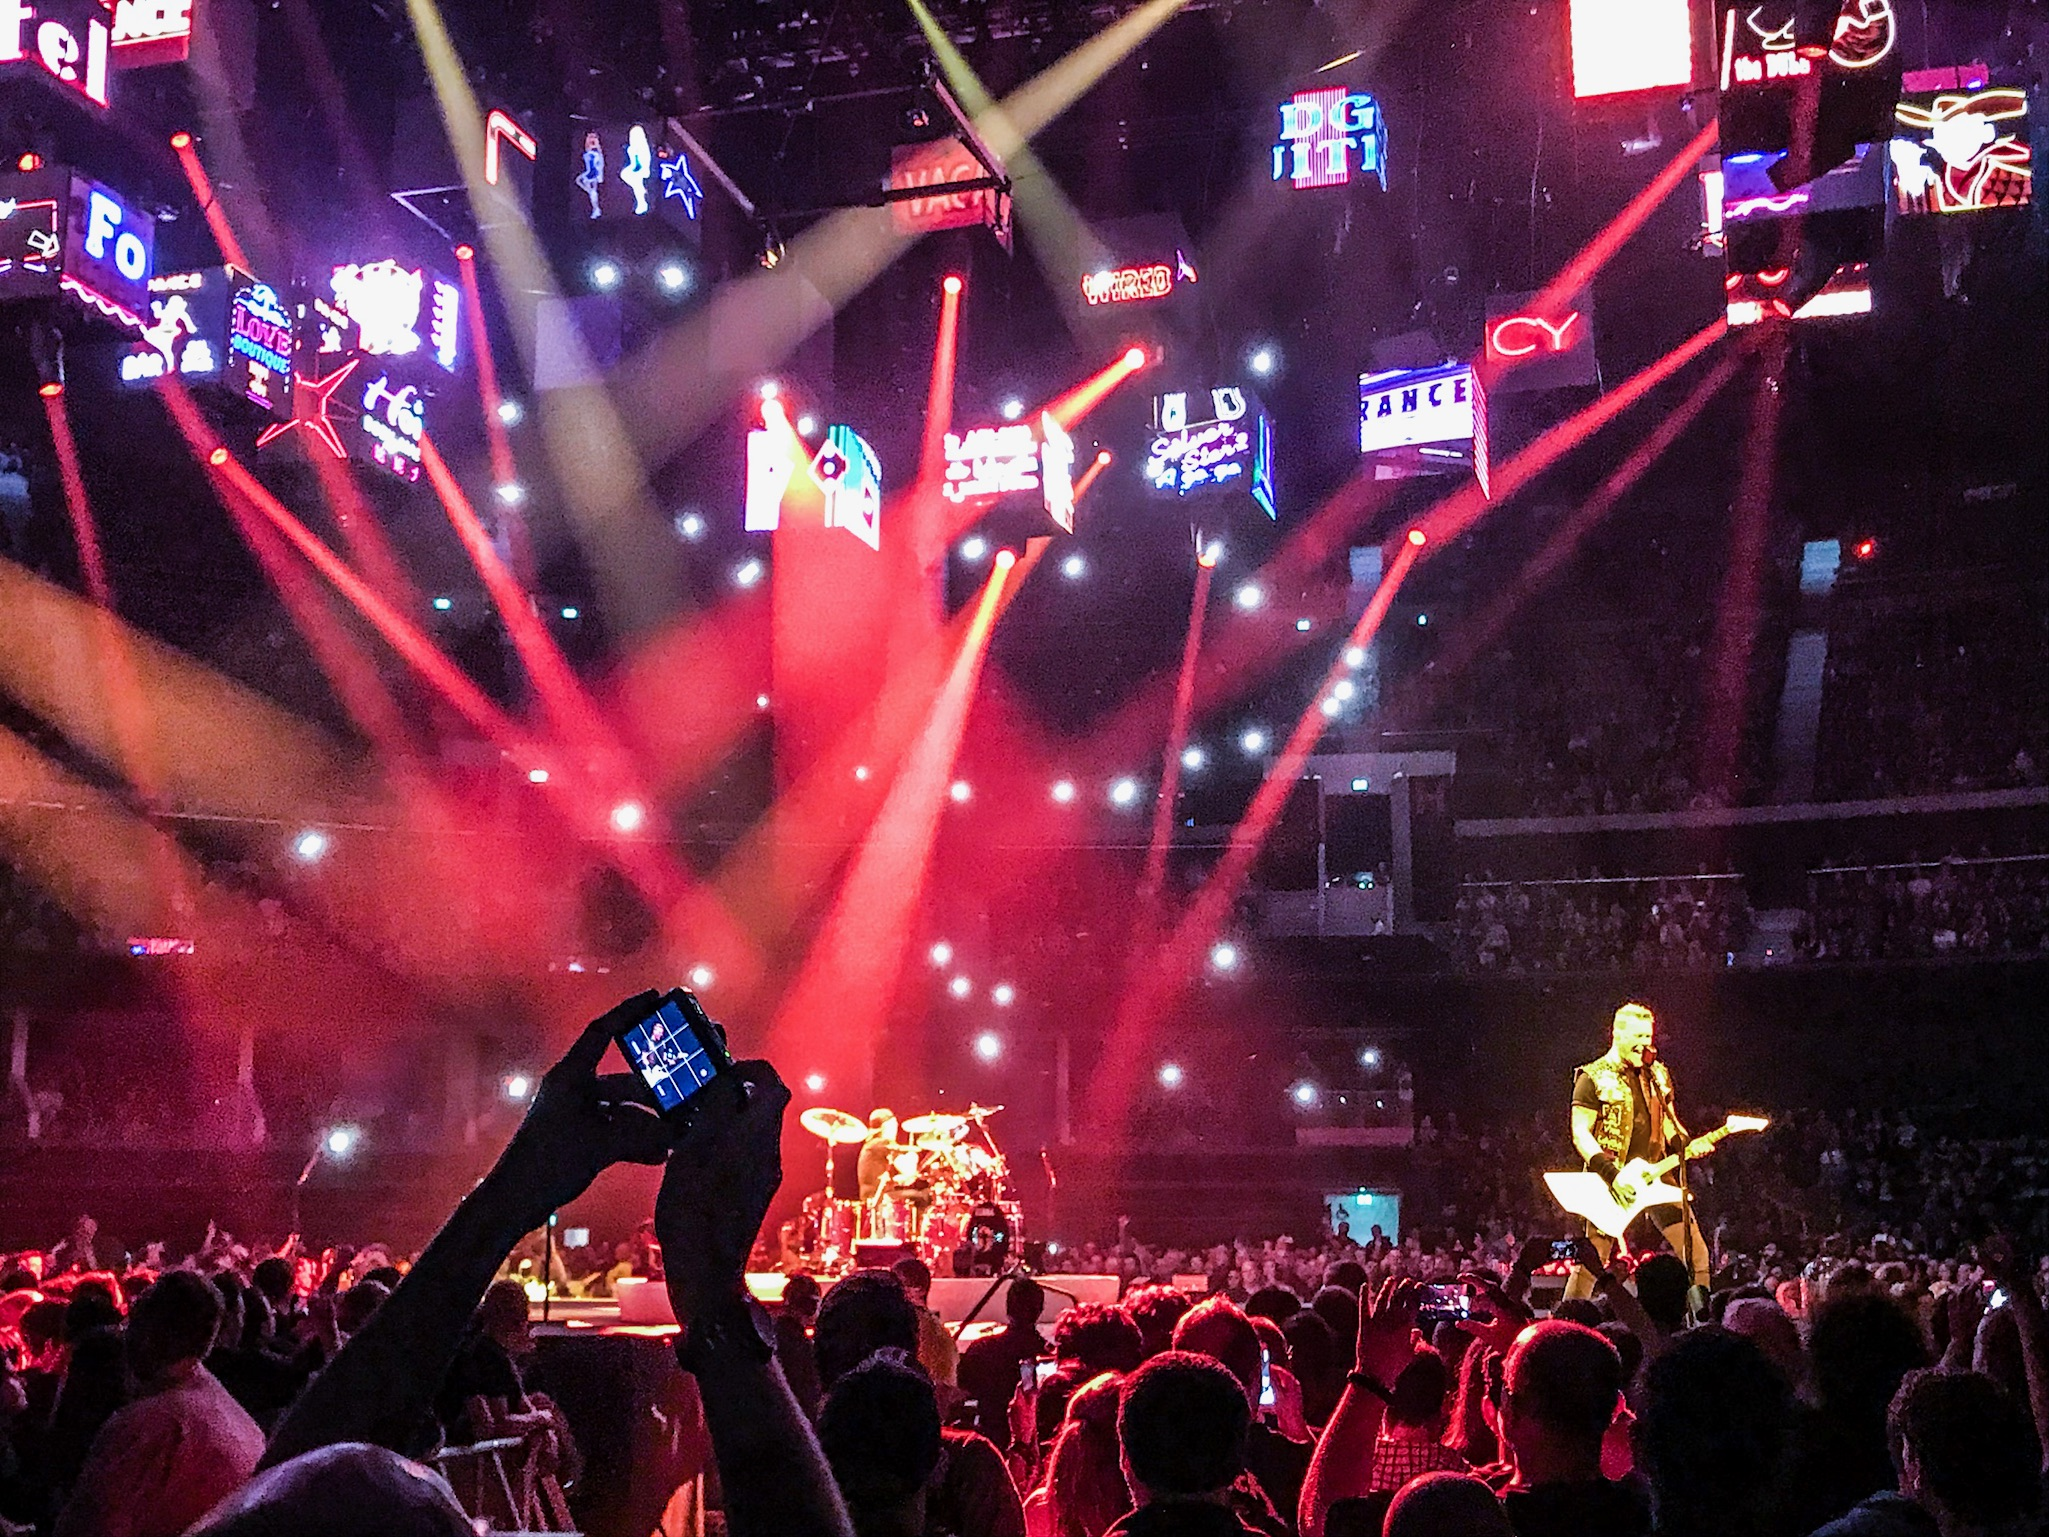 """PHONE PICTURE : METALLICA PERFORMING AT SSE HYDRO, GLASGOW - 26/10/2017 DURING """"MOTH INTO FLAME""""  PICTURE BY: CALUM BUCHAN PHOTOGRAPHY"""